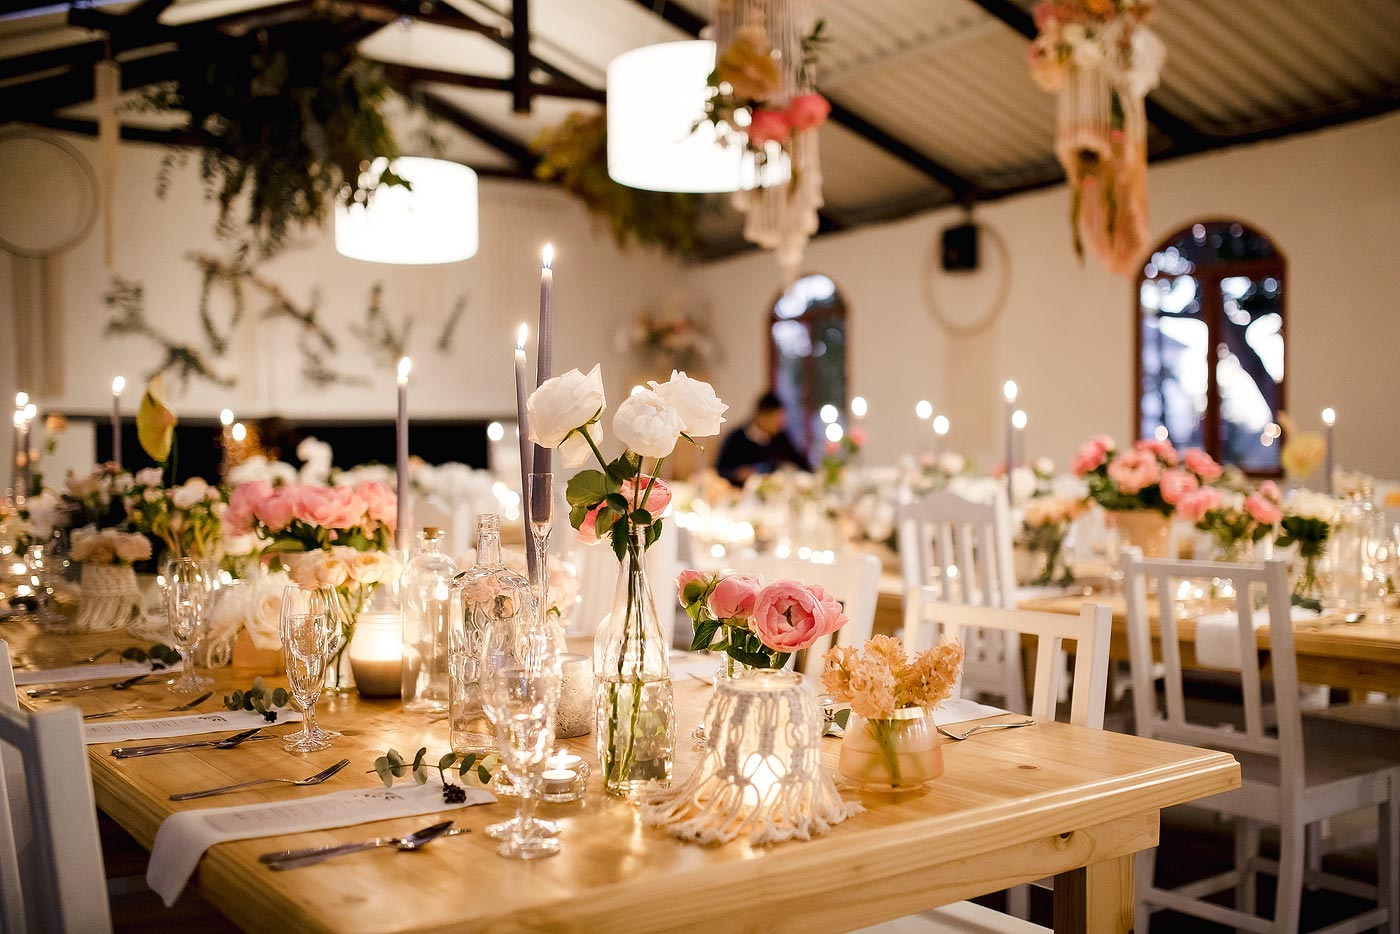 Elegant wedding flowers and reception decor with beautiful lighting.